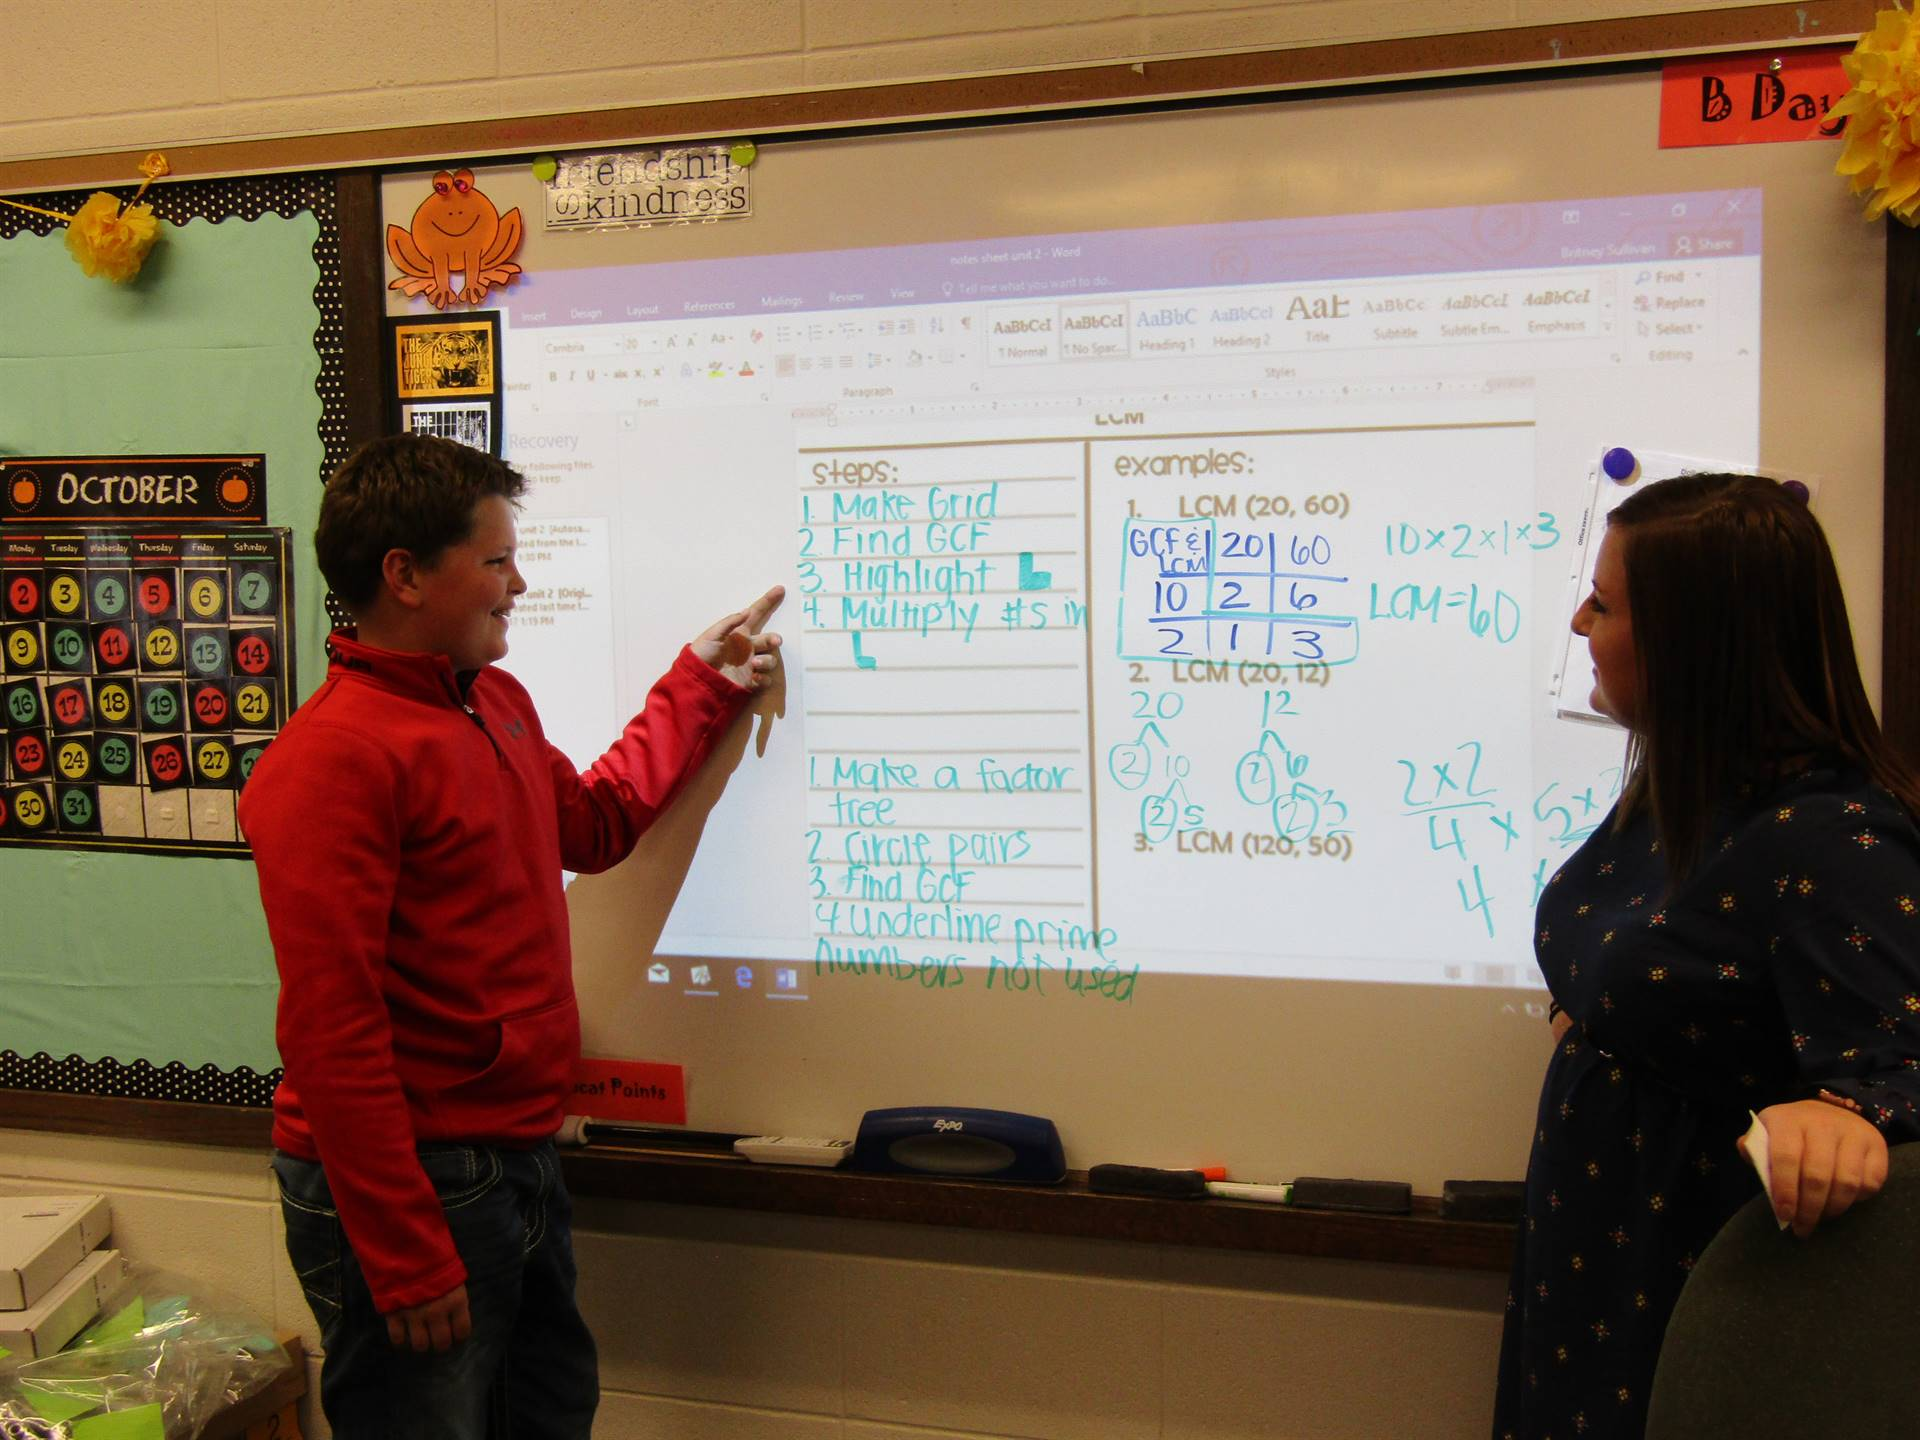 DMIS student receives instruction on the whiteboard